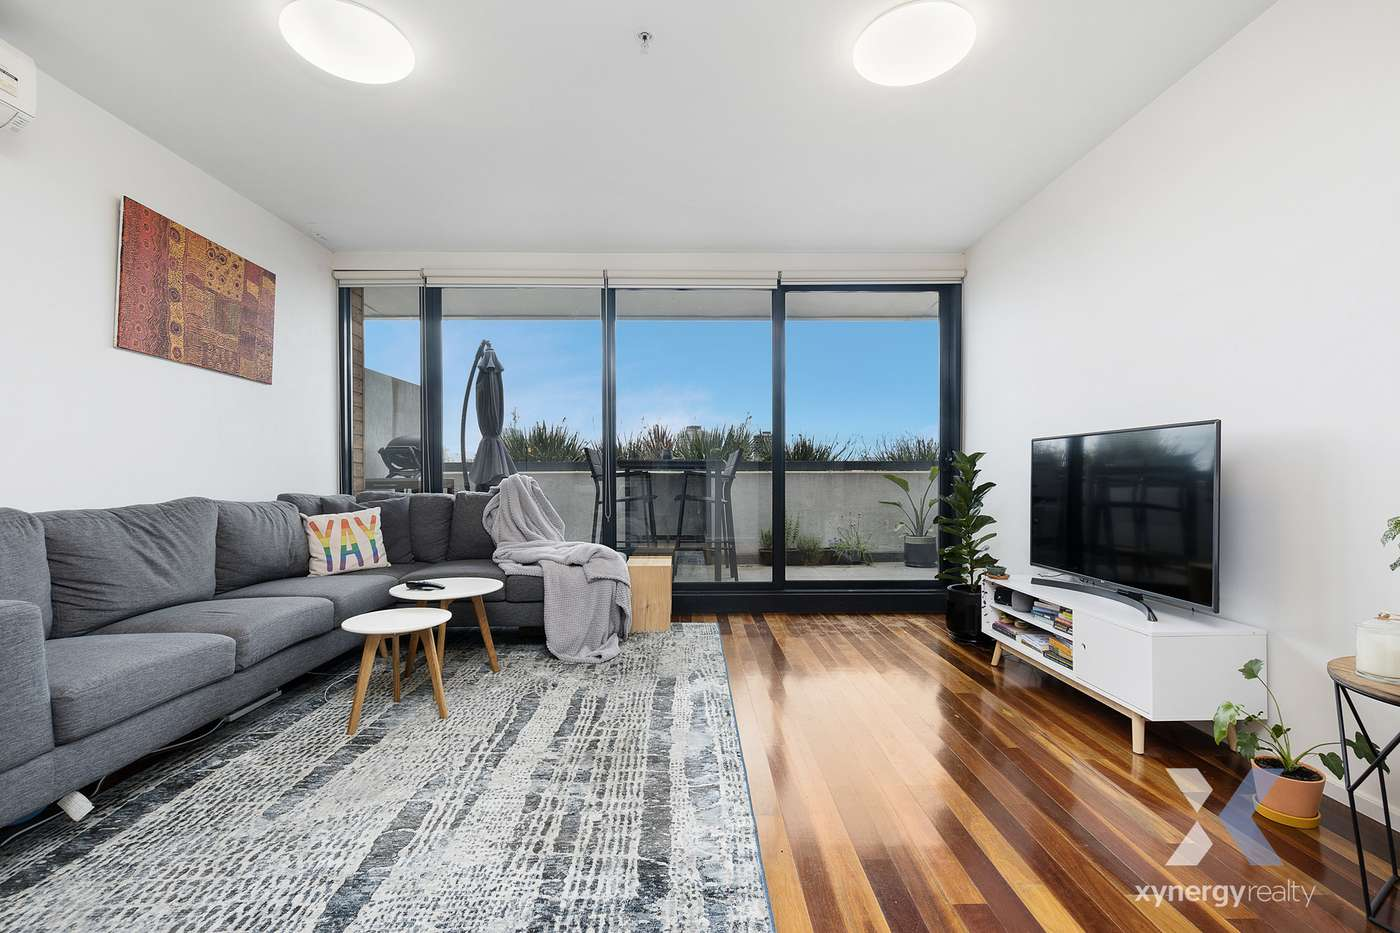 Main view of Homely apartment listing, 401/152 Peel Street, Windsor, VIC 3181